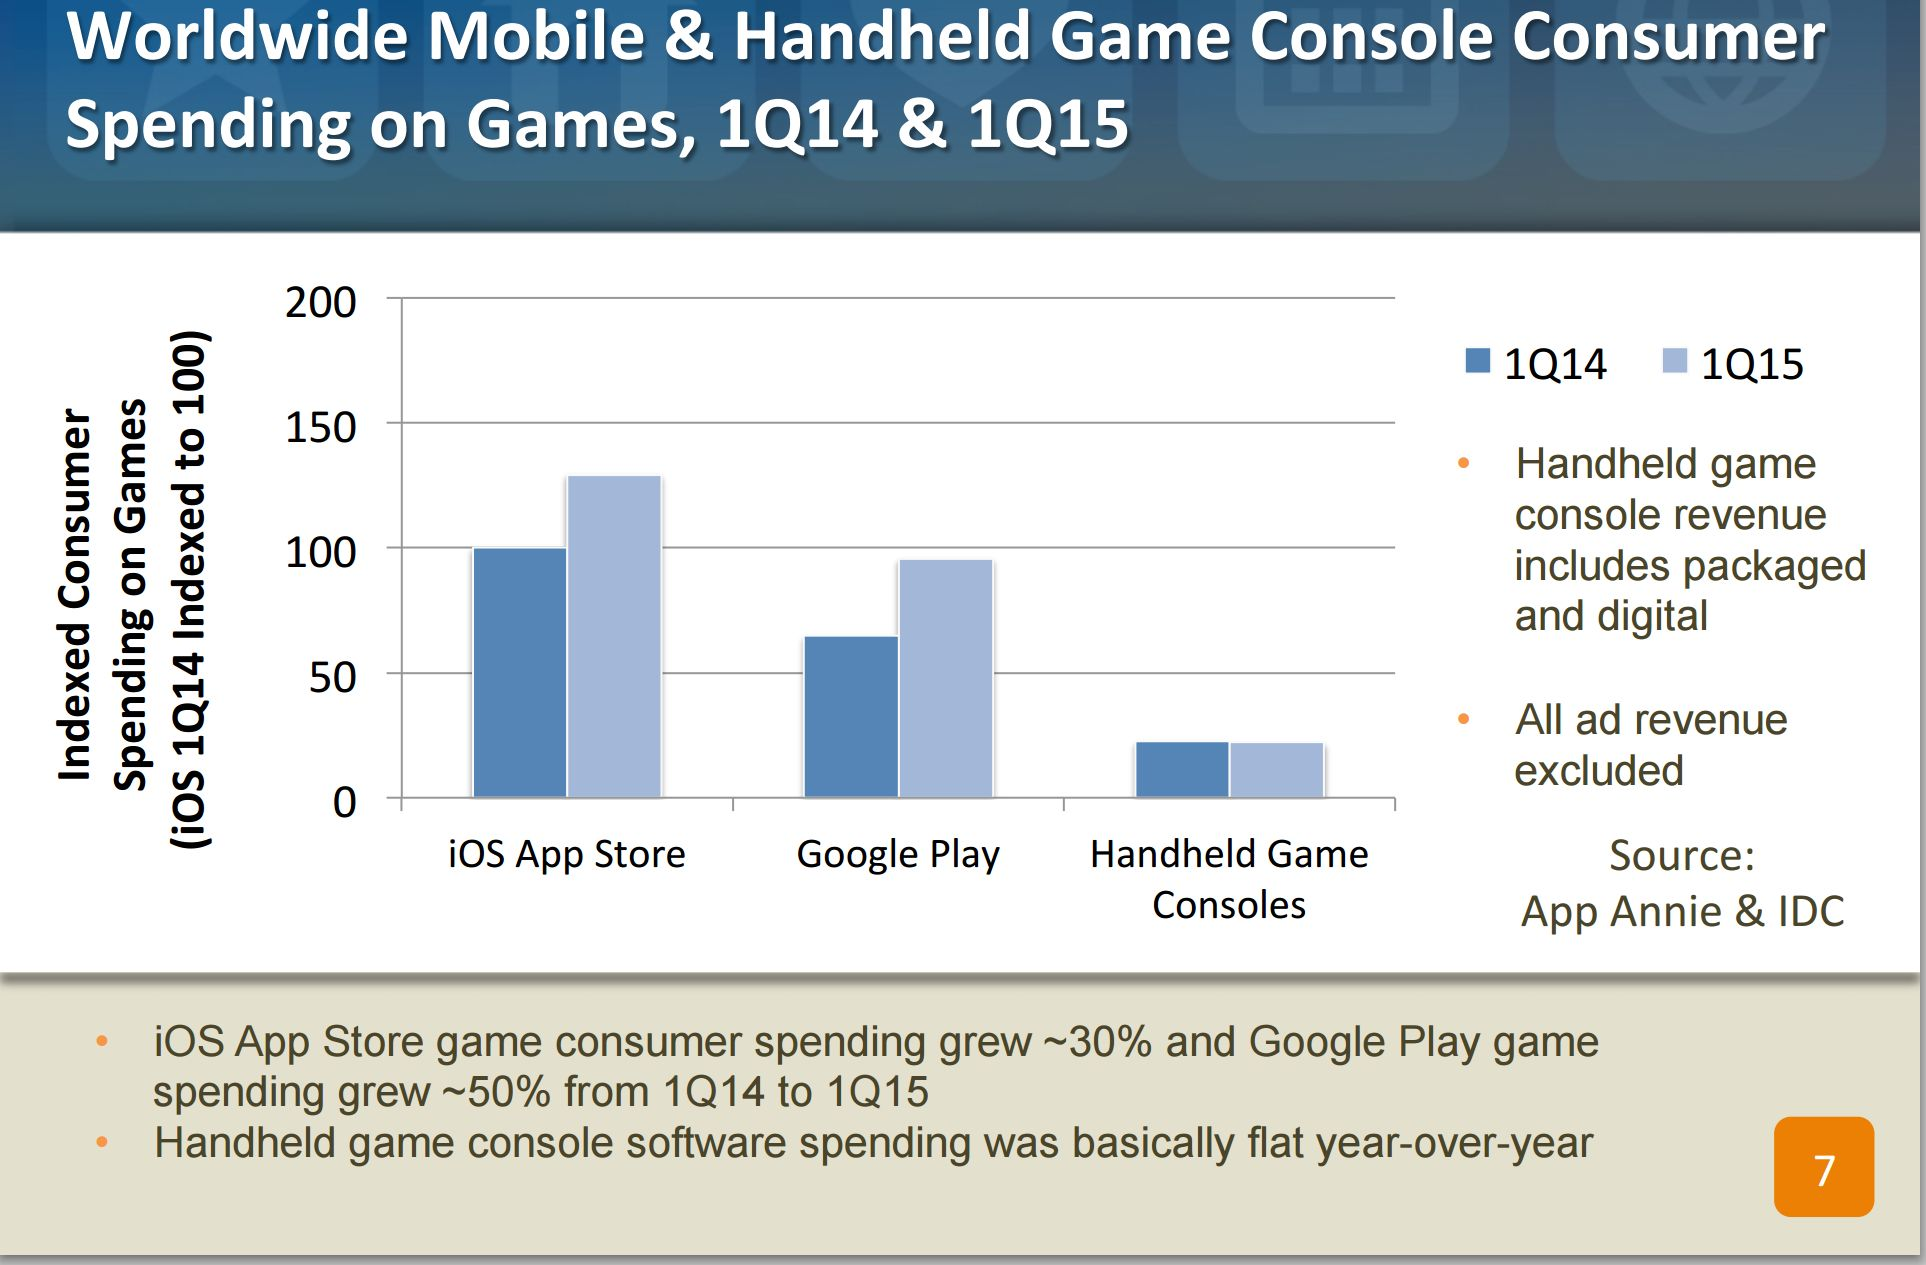 App Annie Handhelds Flat revenue-from-mobile-games-are-imbrication-the-3ds-and-playstation-vita-mobile-games-3ds-and-playstation-vita-tinoshare.com